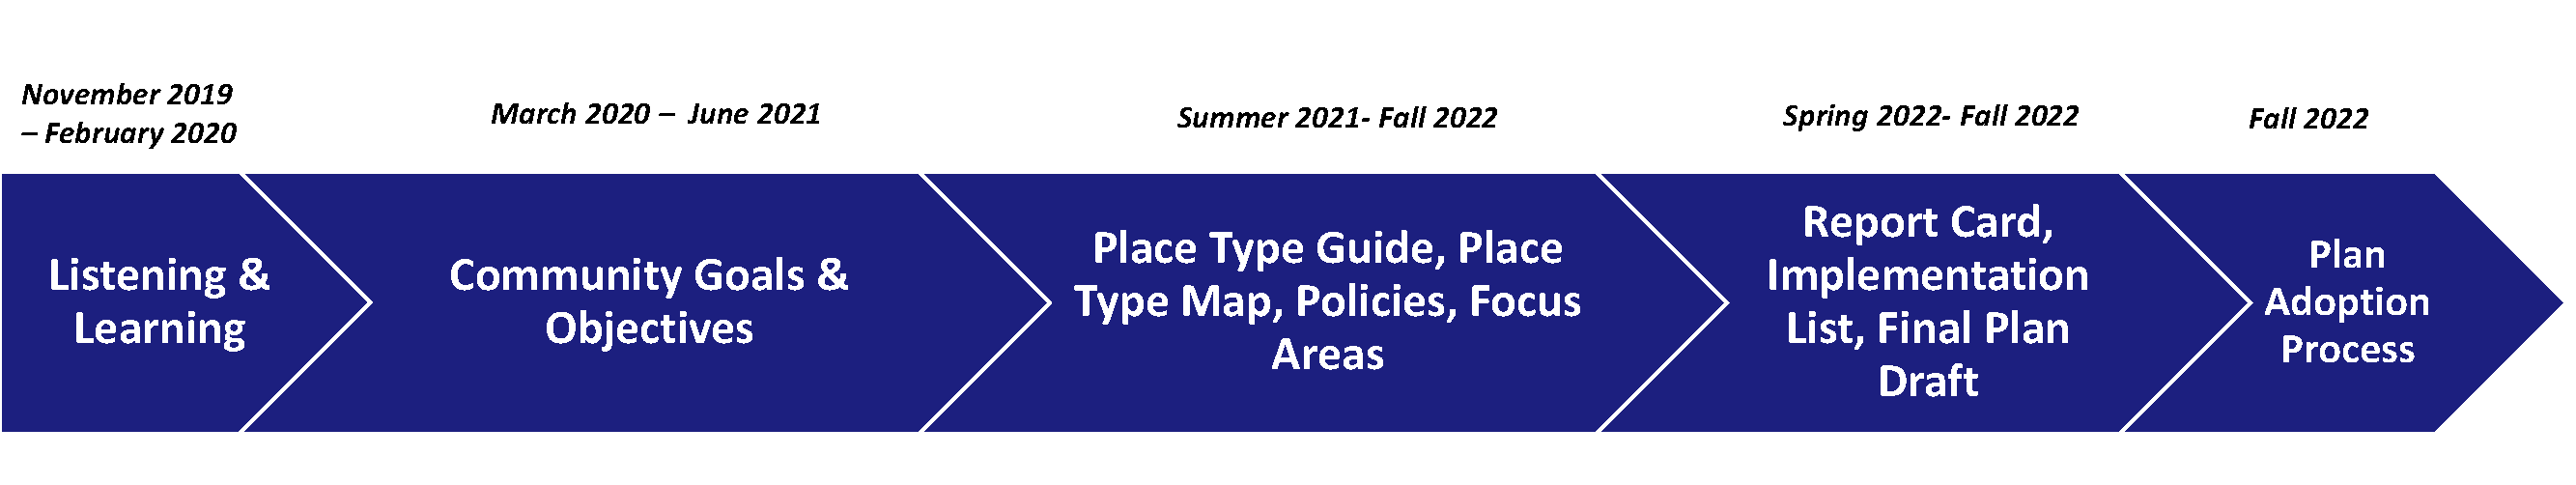 Project Timeline November 2019- February 2020 Listening and Learning March 2020- June 2021 Community Goals and Objectives Summer 2021- Fall 2022 Place Type Guide, Place Type Map, Policies, Focus Areas Spring 2022- Fall 2022 Report Card, Implementation List, Final Plan Draft Fall 2022 Plan adoption Process